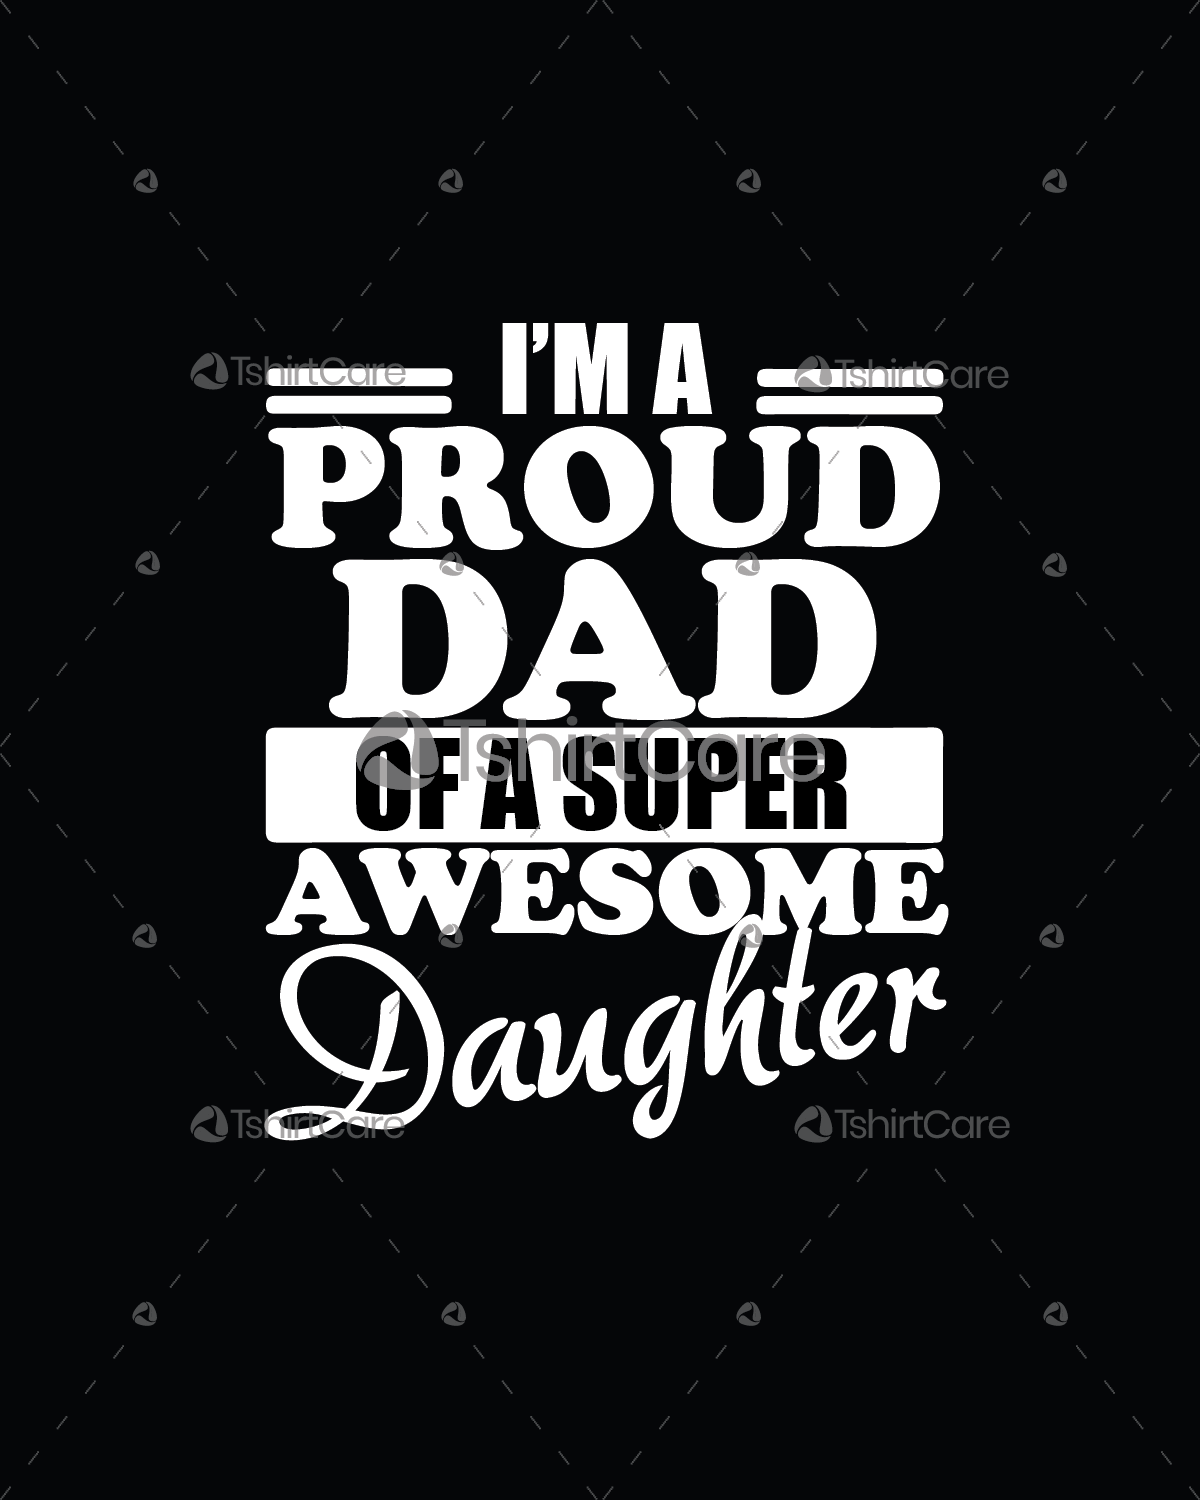 d2995952 I am a proud dad of a super awesome daughter T shirt Design for ...